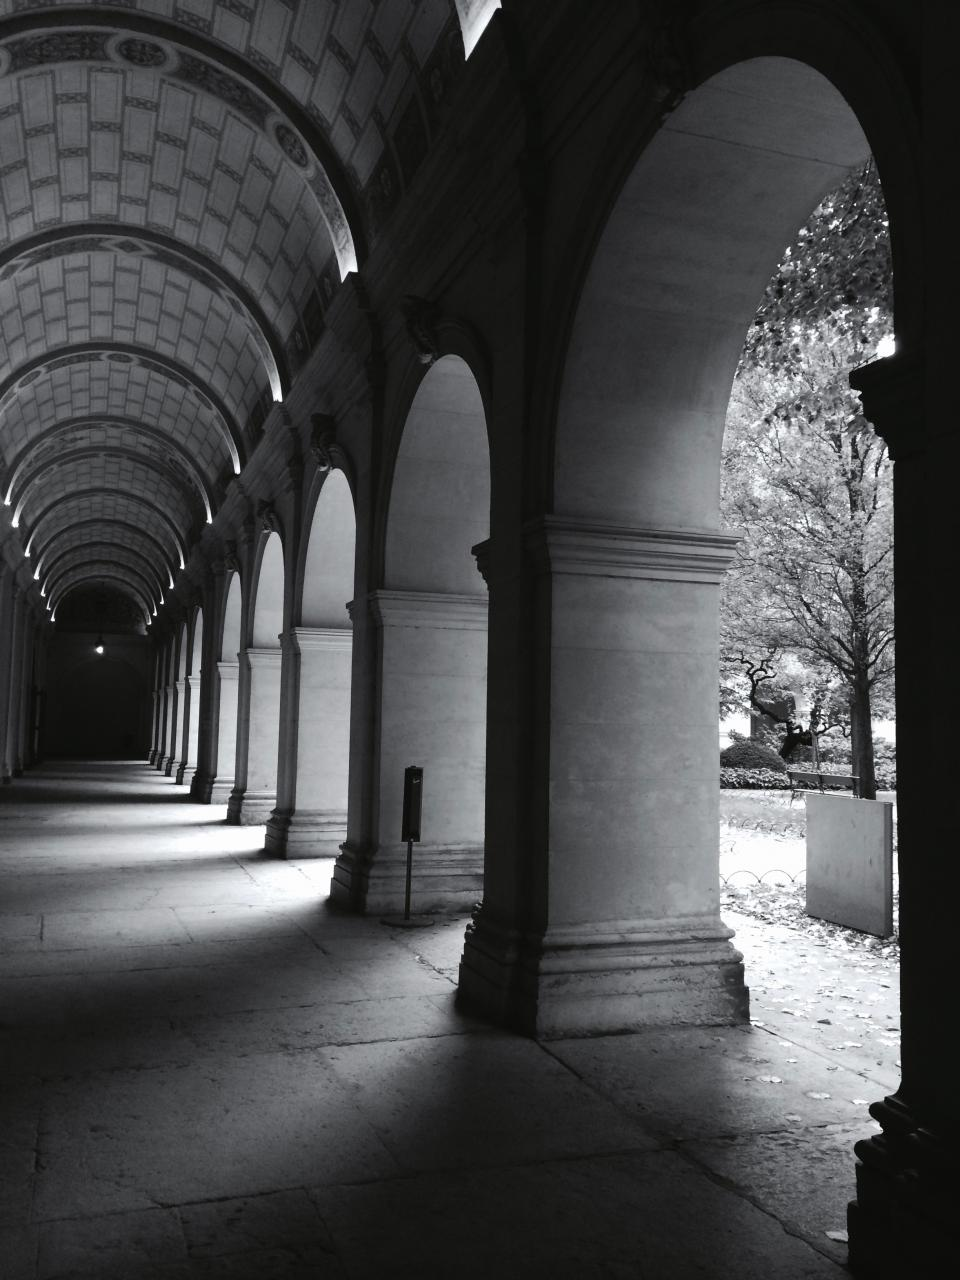 architecture buildings corridors hallways arch pillars light shadows patterns perspective black and white